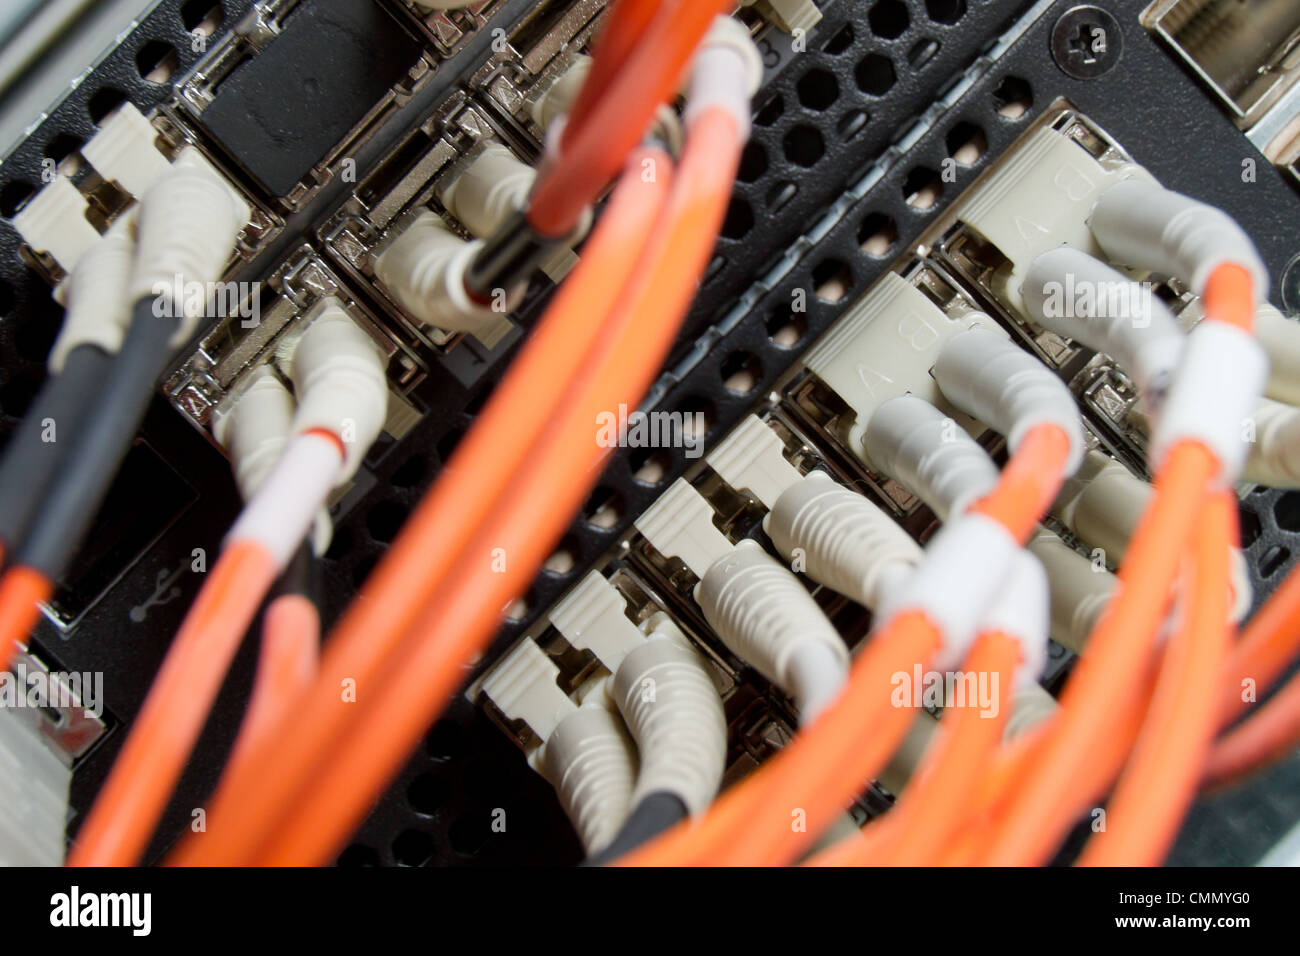 optic fiber cables connected to data center - Stock Image